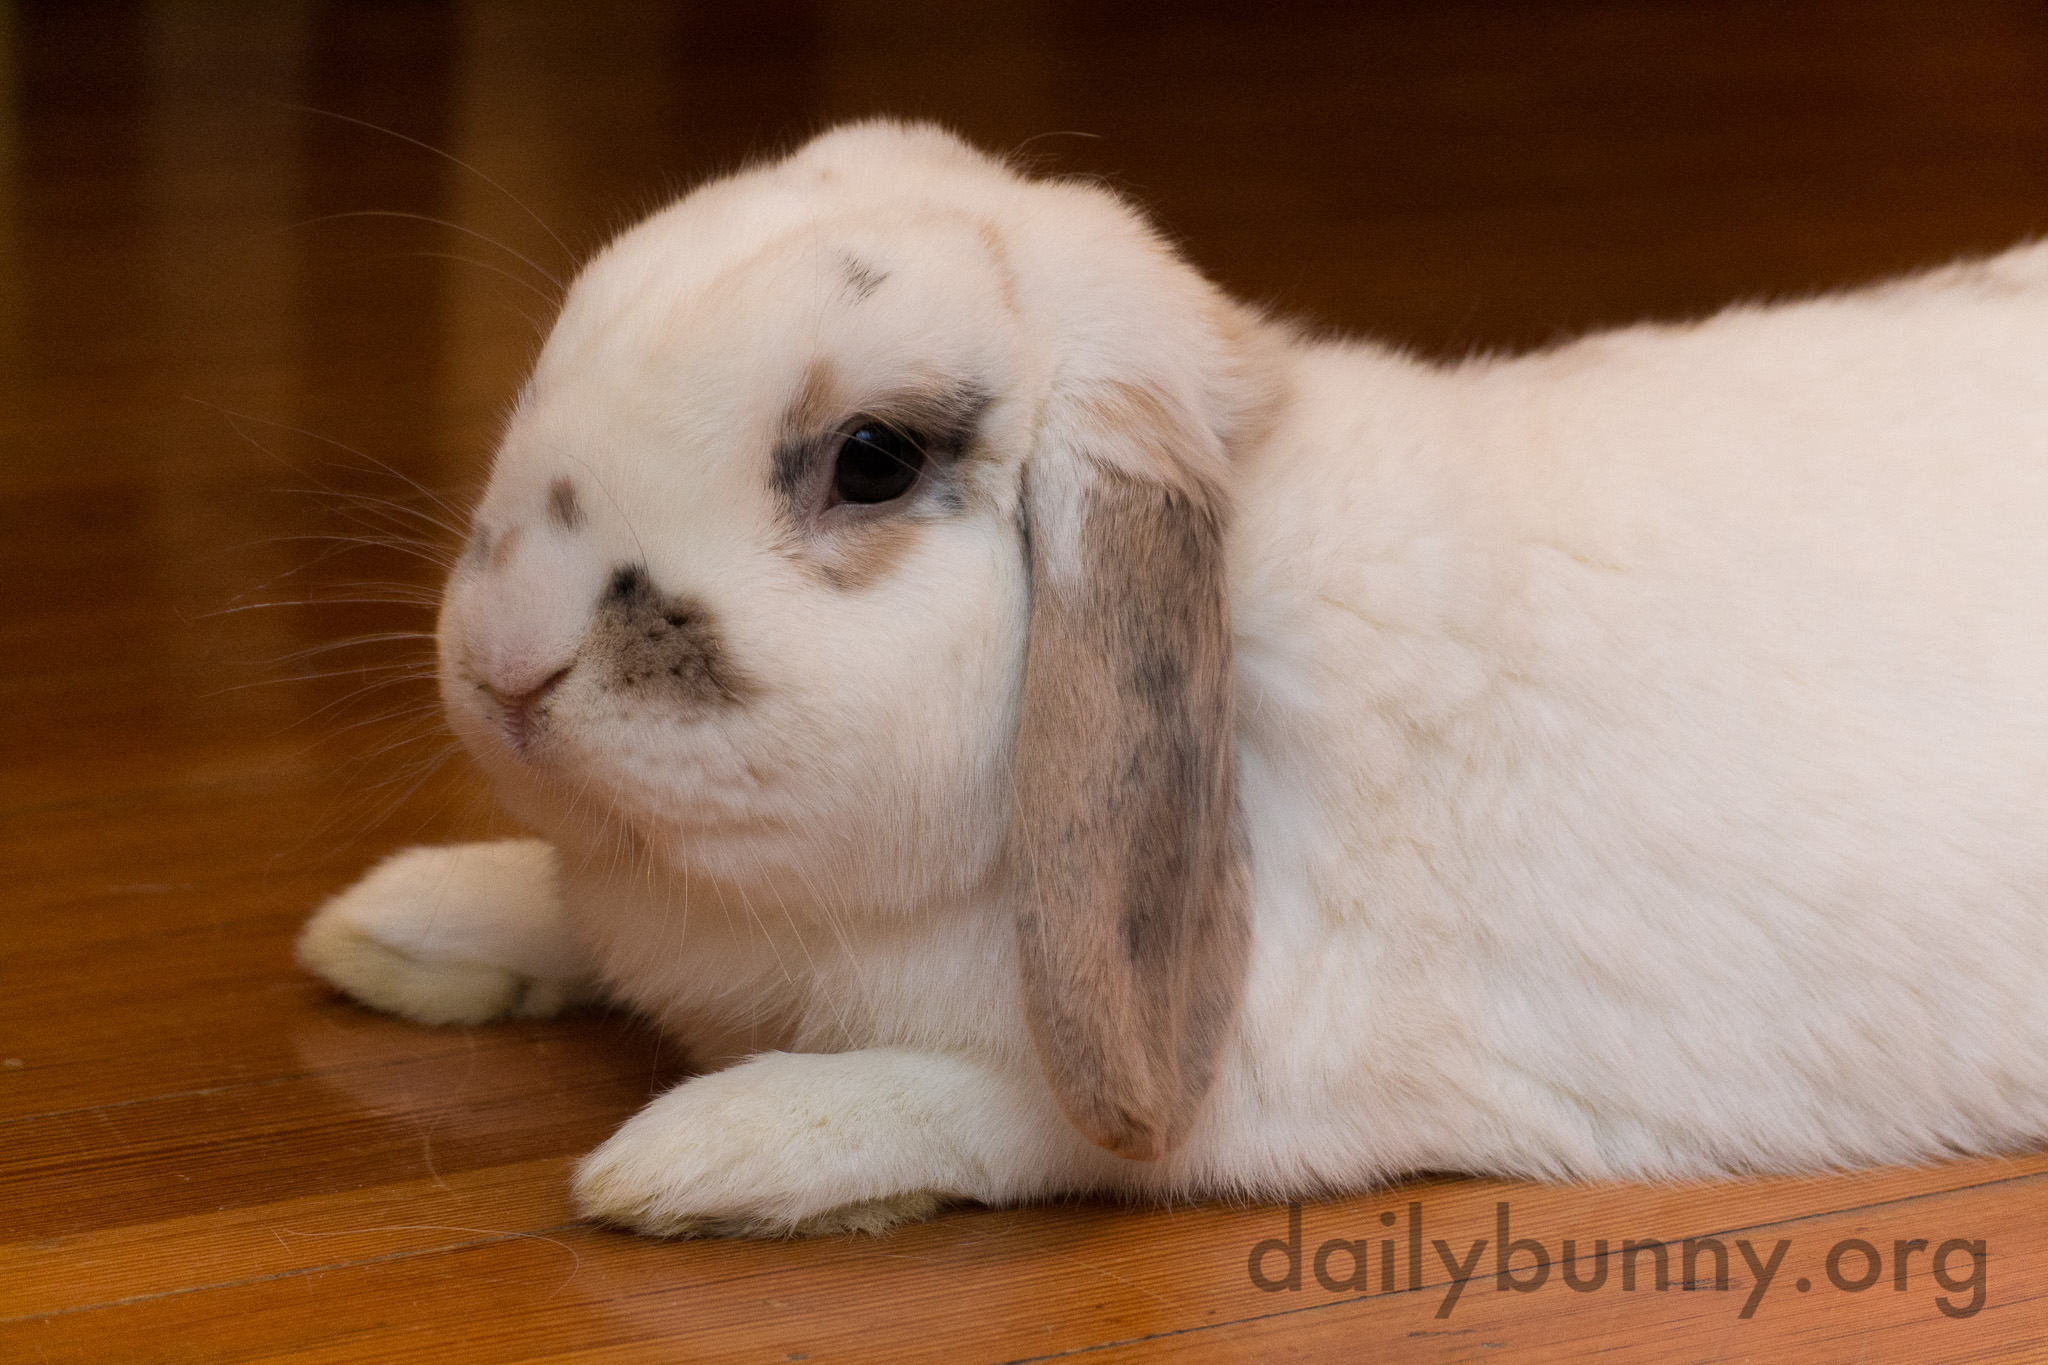 Bunny Cools Down on the Floor Before Jumping Back Up to Run Around Again